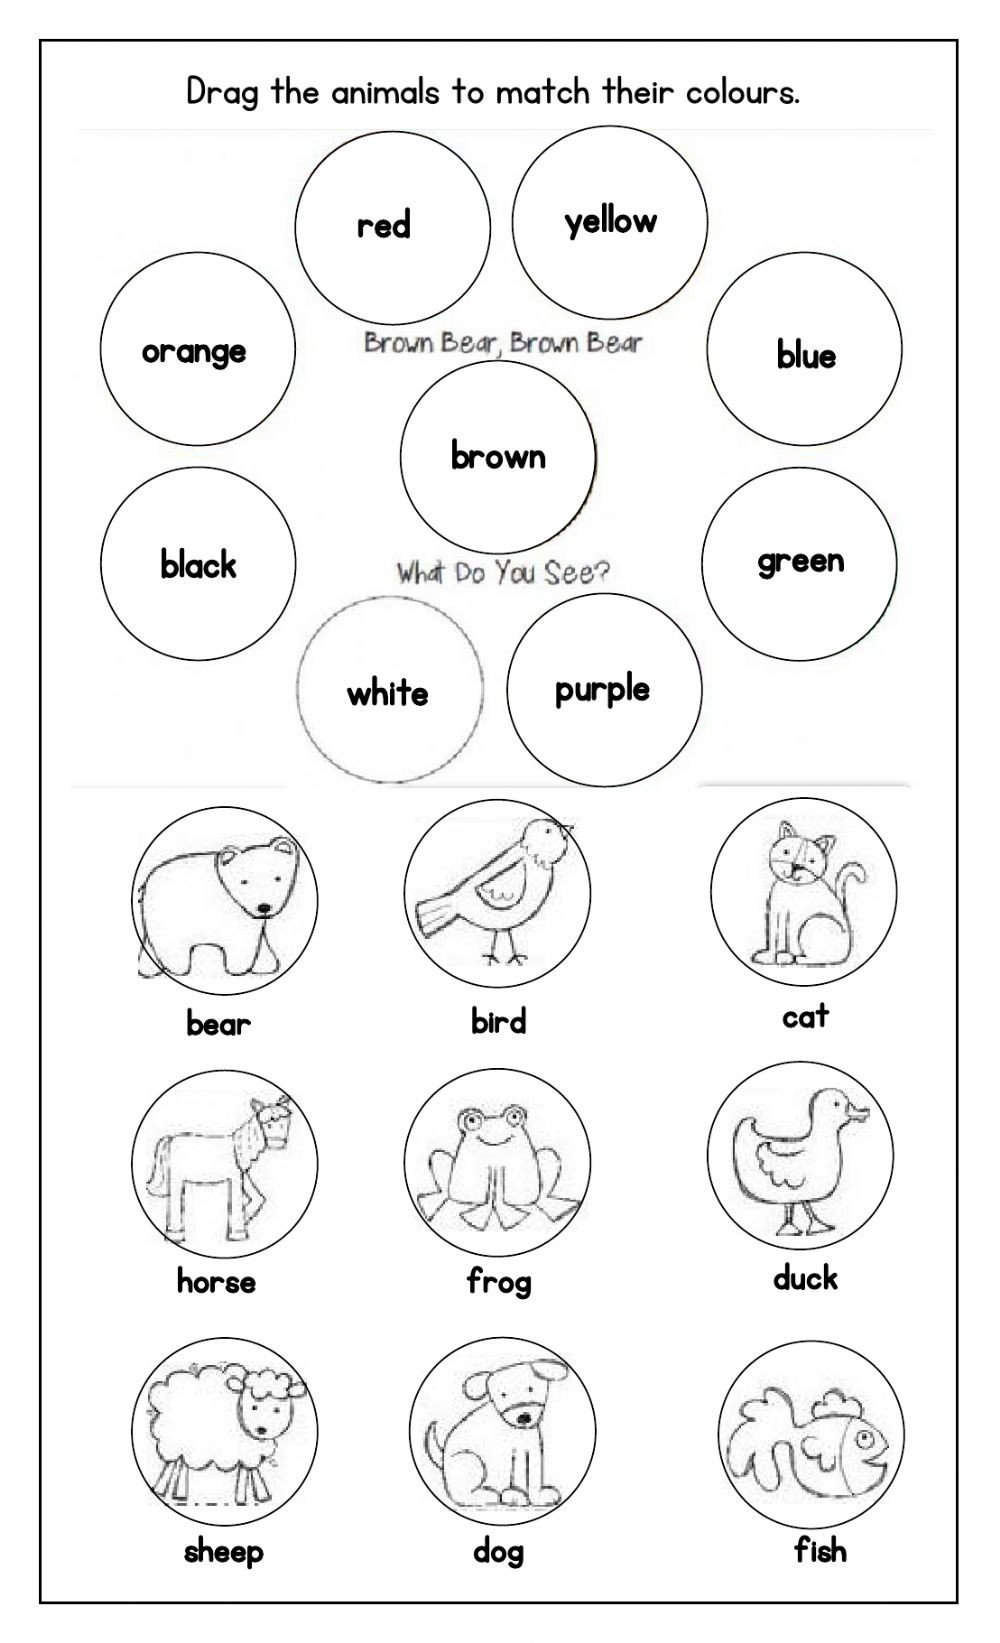 Brown Bear Brown Bear Worksheets Brown Bear Brown Bear What Do You See Interactive Worksheet